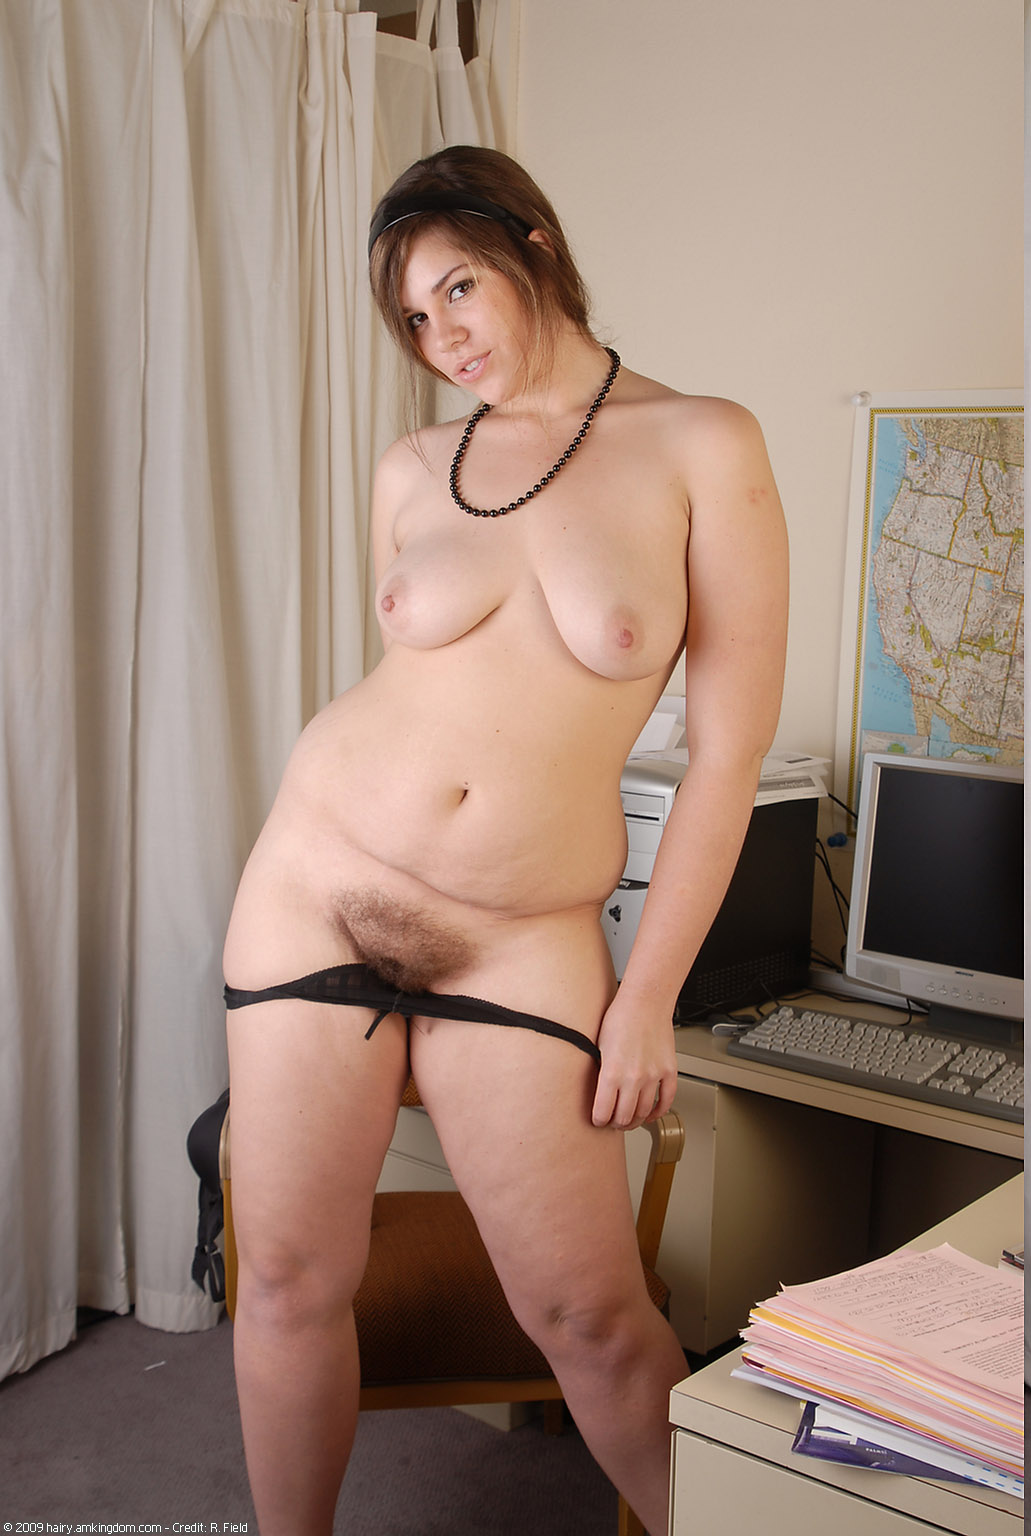 Something Hairy fat women naked consider